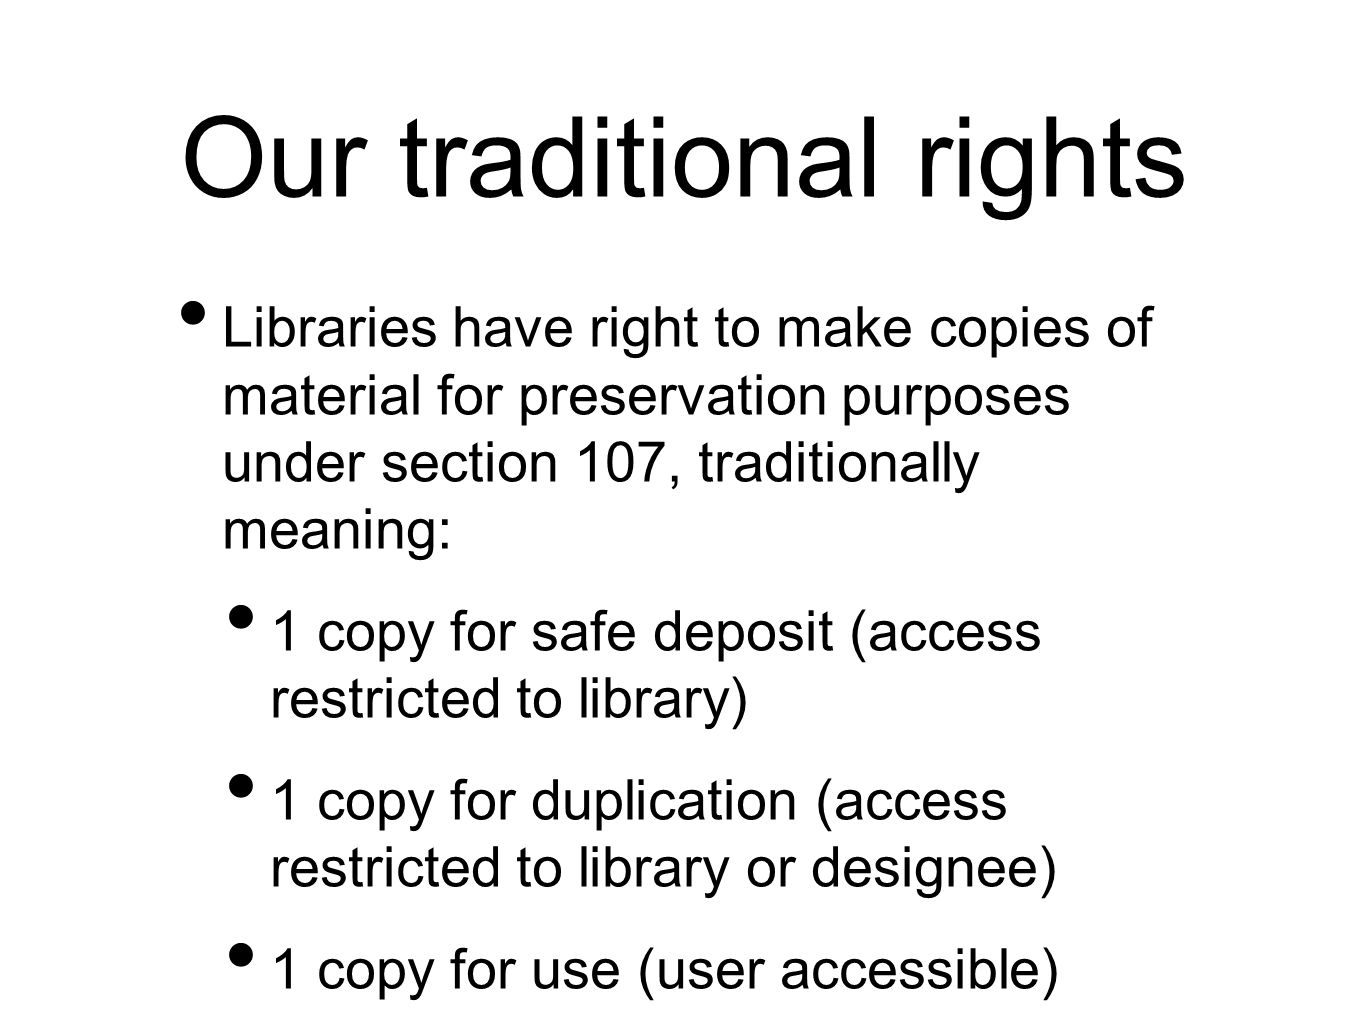 Our traditional rights Libraries have right to make copies of material for preservation purposes under section 107, traditionally meaning: 1 copy for safe deposit (access restricted to library) 1 copy for duplication (access restricted to library or designee) 1 copy for use (user accessible)